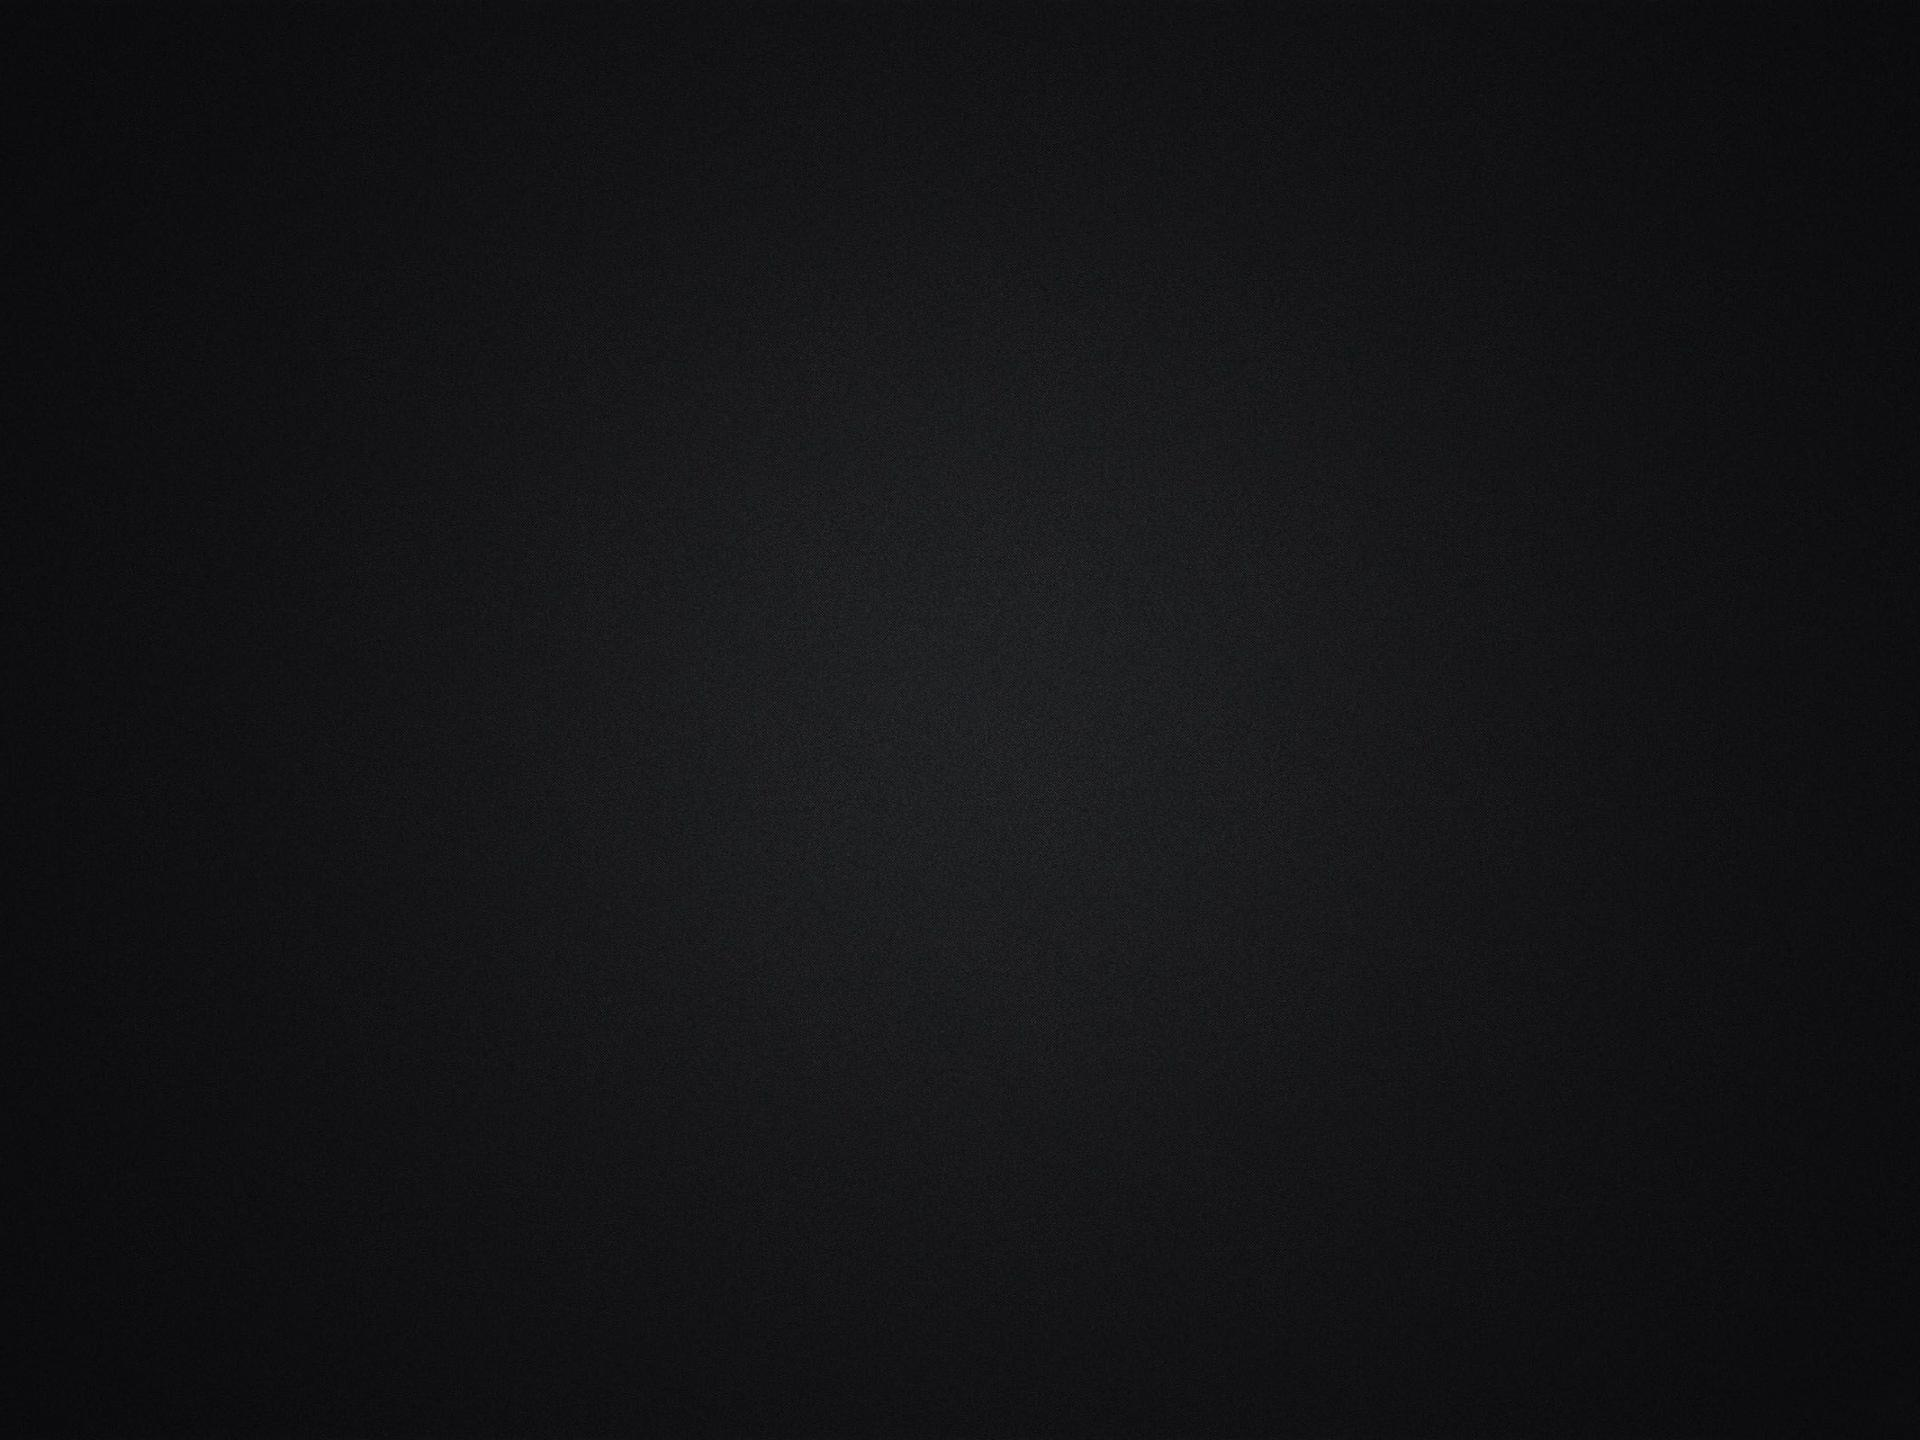 abstract black backgrounds - wallpaper cave